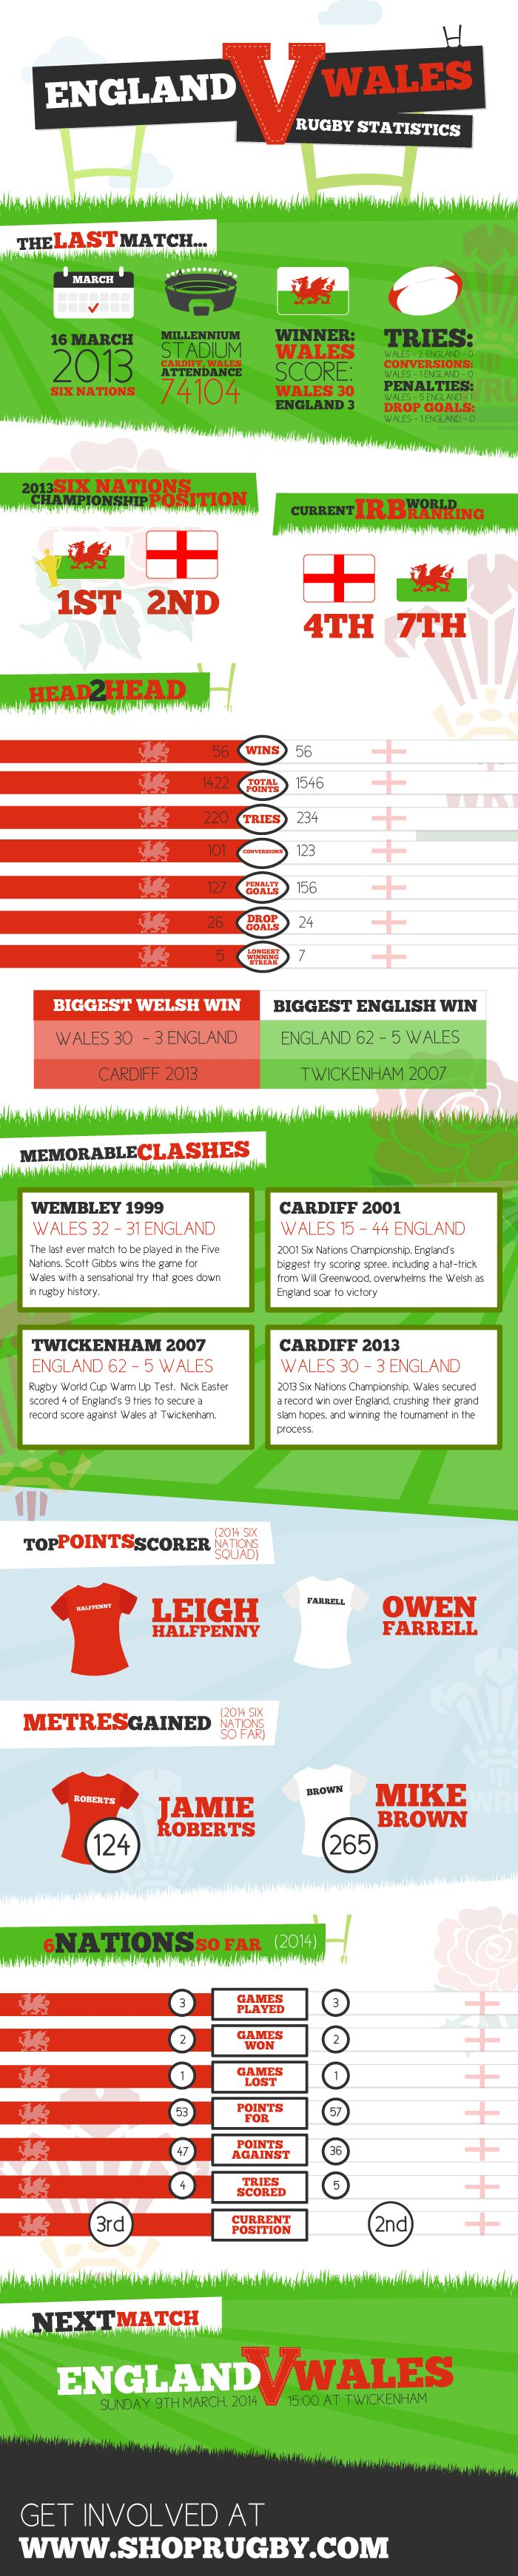 England vs. Wales Rugby Statistics